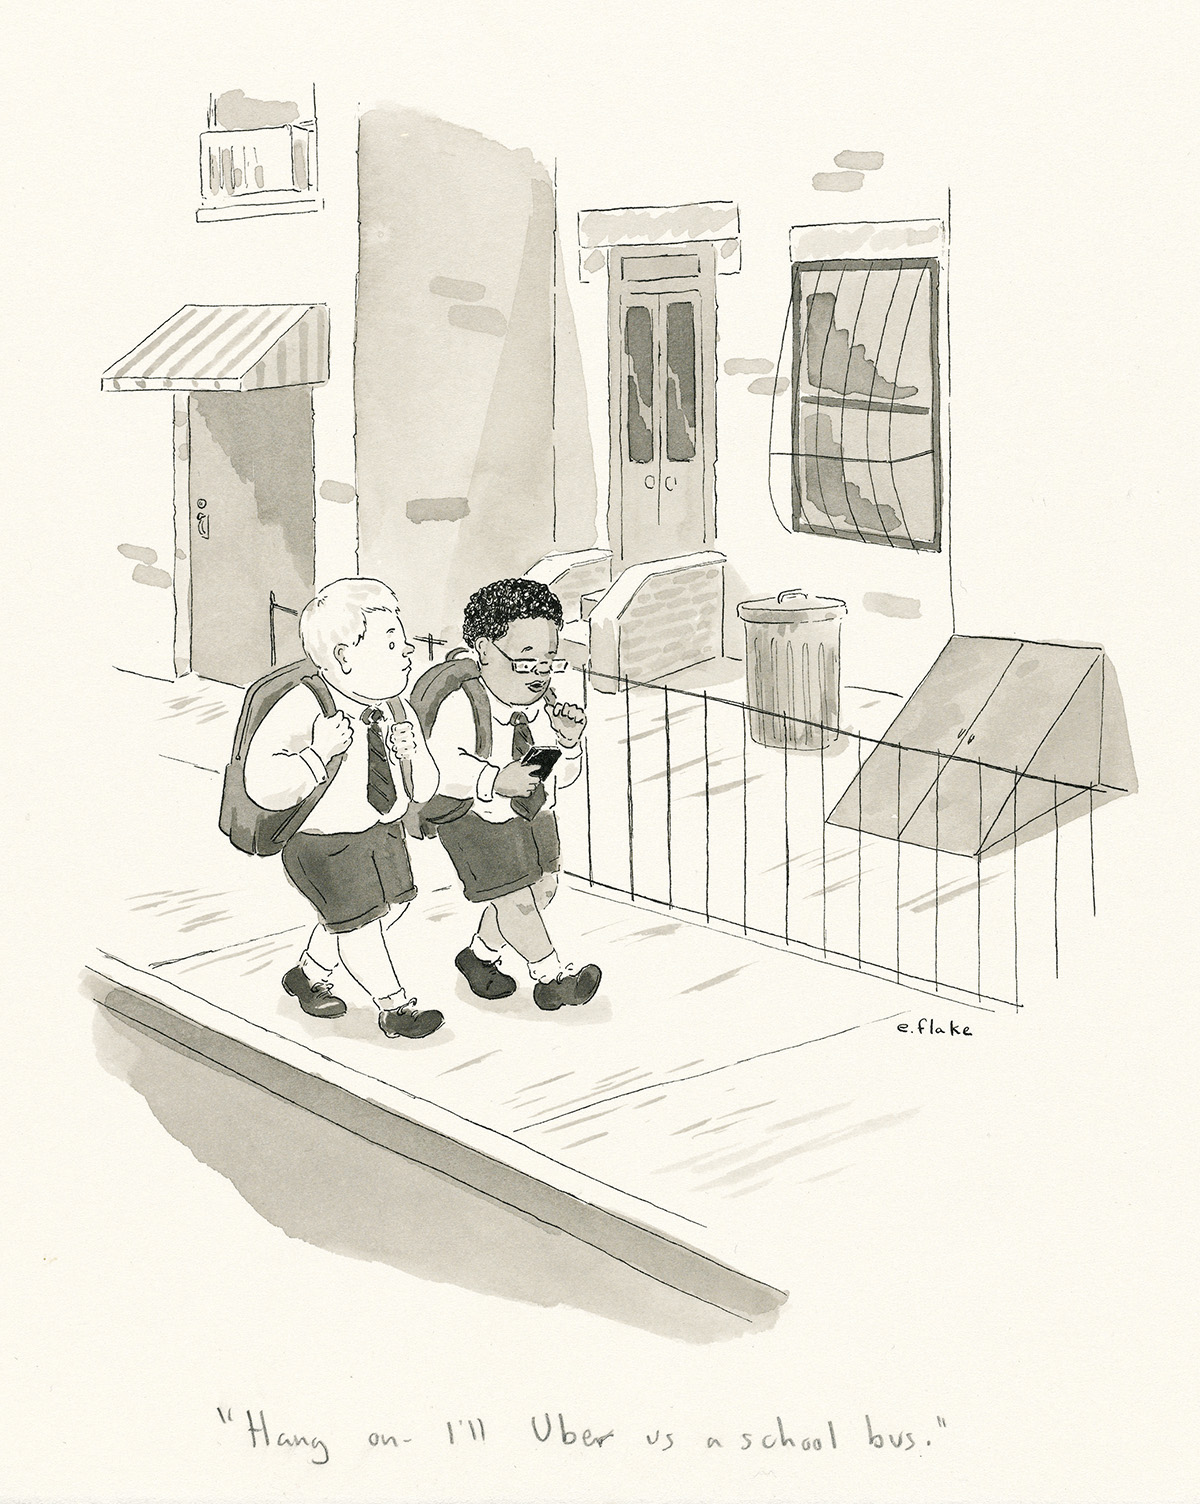 THE-NEW-YORKER-EMILY-FLAKE-Hang-on---Ill-Uber-us-a-school-bu